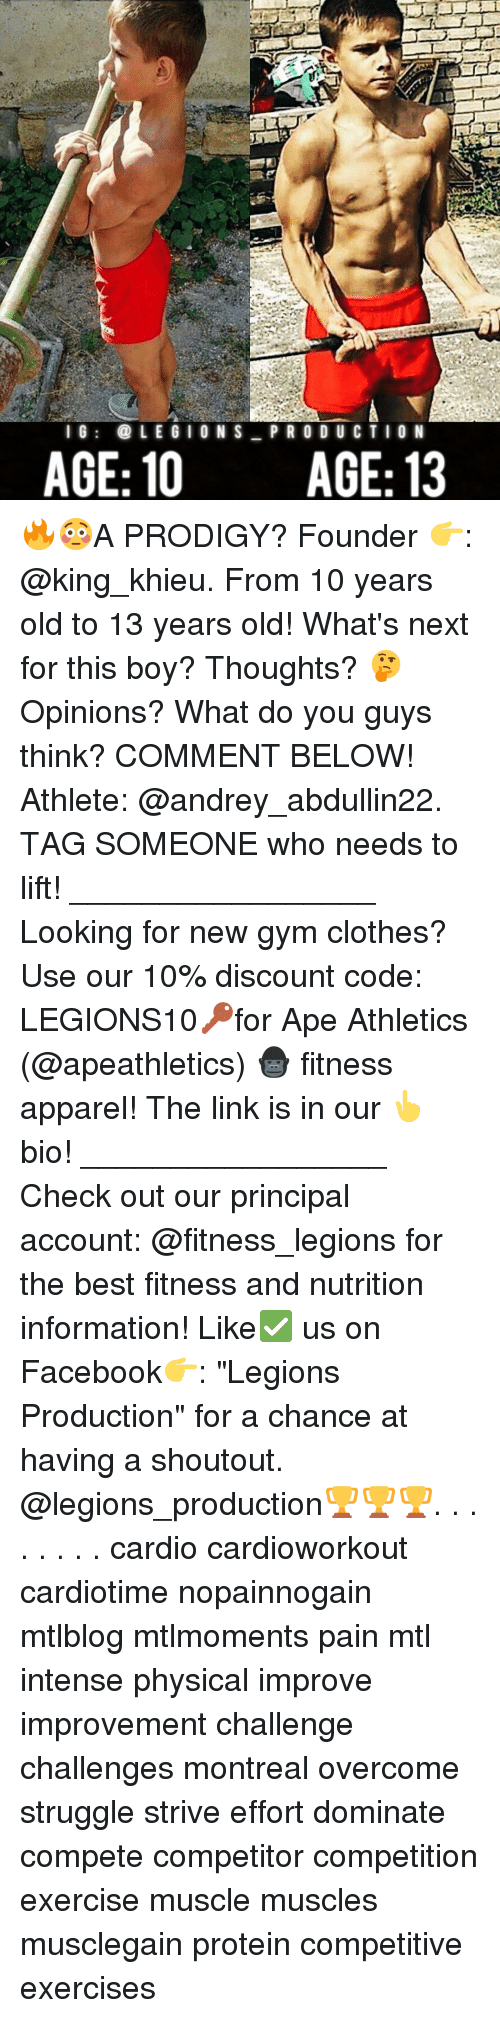 "Clothes, Facebook, and Gym: l G  LEGION S  PRO DU CTION  AGE: 10 AGE: 13 🔥😳A PRODIGY? Founder 👉: @king_khieu. From 10 years old to 13 years old! What's next for this boy? Thoughts? 🤔Opinions? What do you guys think? COMMENT BELOW! Athlete: @andrey_abdullin22. TAG SOMEONE who needs to lift! _________________ Looking for new gym clothes? Use our 10% discount code: LEGIONS10🔑for Ape Athletics (@apeathletics) 🦍 fitness apparel! The link is in our 👆 bio! _________________ Check out our principal account: @fitness_legions for the best fitness and nutrition information! Like✅ us on Facebook👉: ""Legions Production"" for a chance at having a shoutout. @legions_production🏆🏆🏆. . . . . . . . cardio cardioworkout cardiotime nopainnogain mtlblog mtlmoments pain mtl intense physical improve improvement challenge challenges montreal overcome struggle strive effort dominate compete competitor competition exercise muscle muscles musclegain protein competitive exercises"